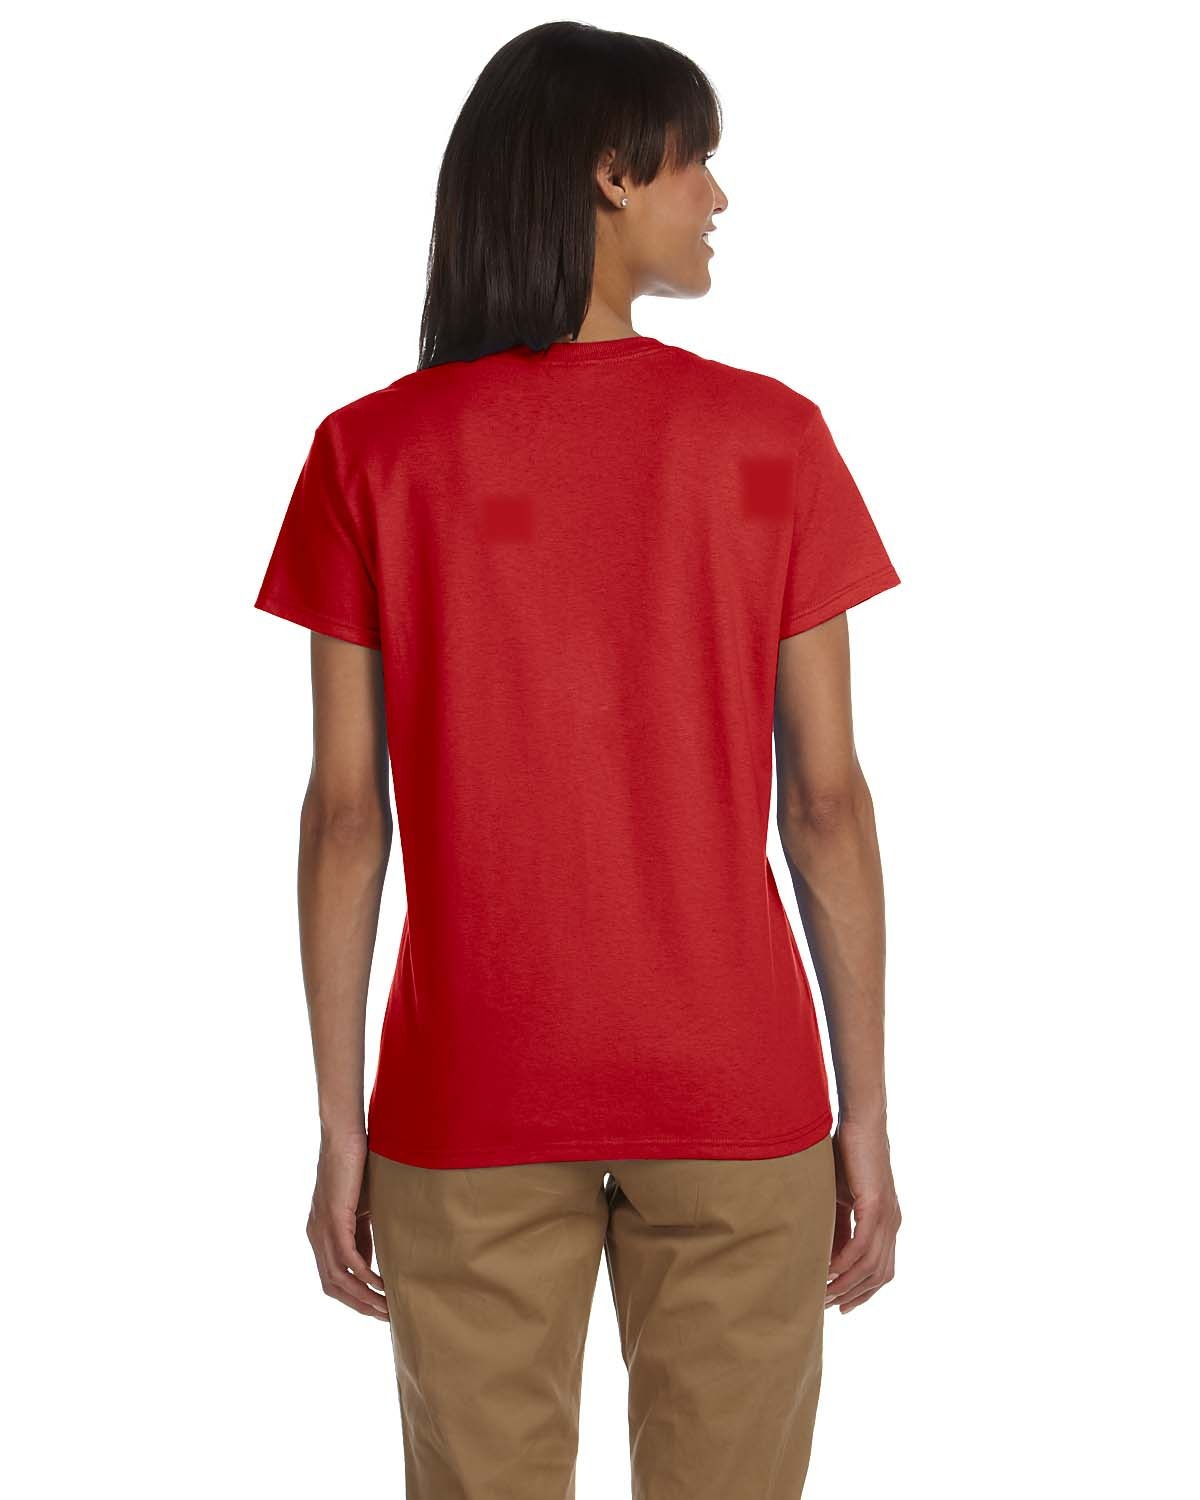 Blank Women S Red T Shirt Rnk Shops